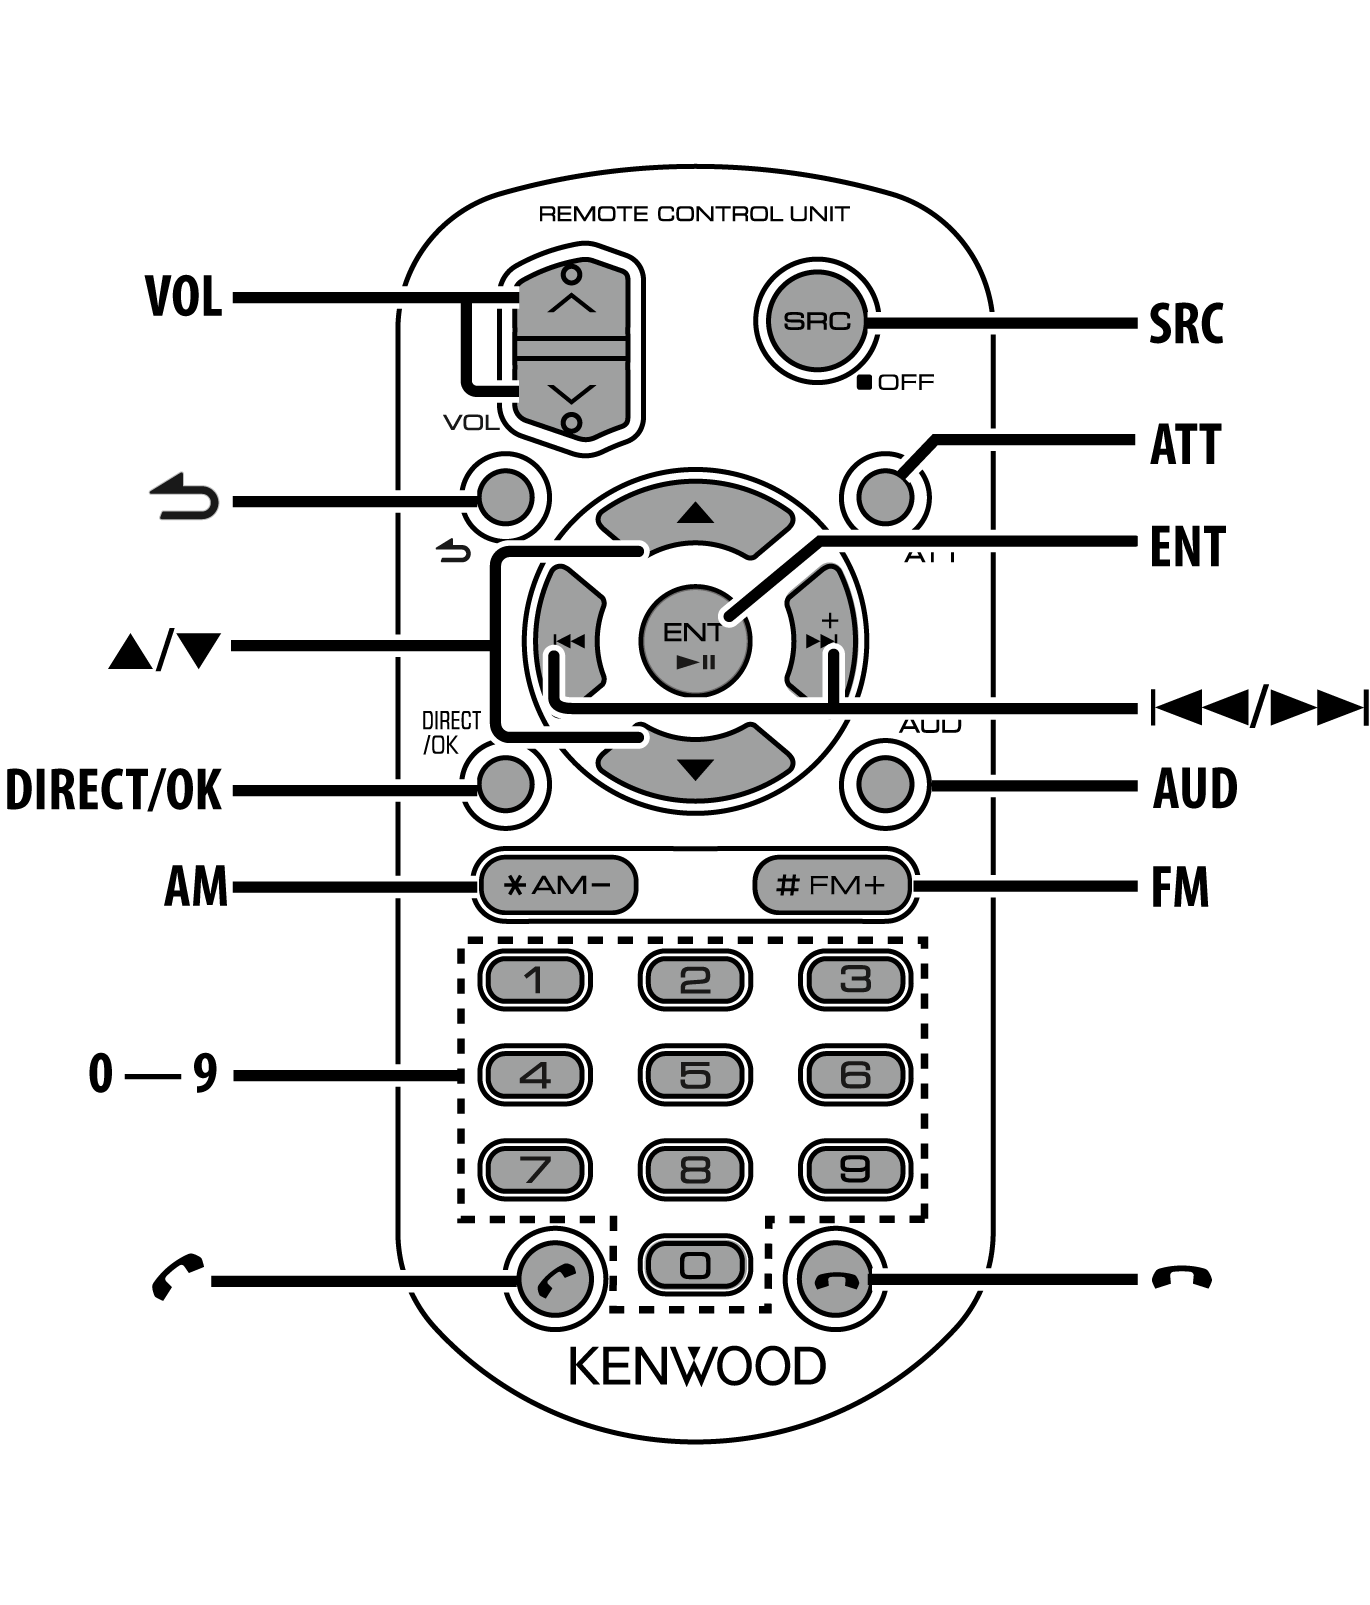 Kenwood Ddx471hd Wiring Diagram moreover Dc With Motorcycle Cdi Ignition Wiring Diagram additionally Mercedes Car Radio Wiring Color Codes also Kenwood Kdc Bt852hd Wiring Harness furthermore Kenwood Dnx5140 Wiring Diagram. on kenwood kdc mp345u wiring diagram